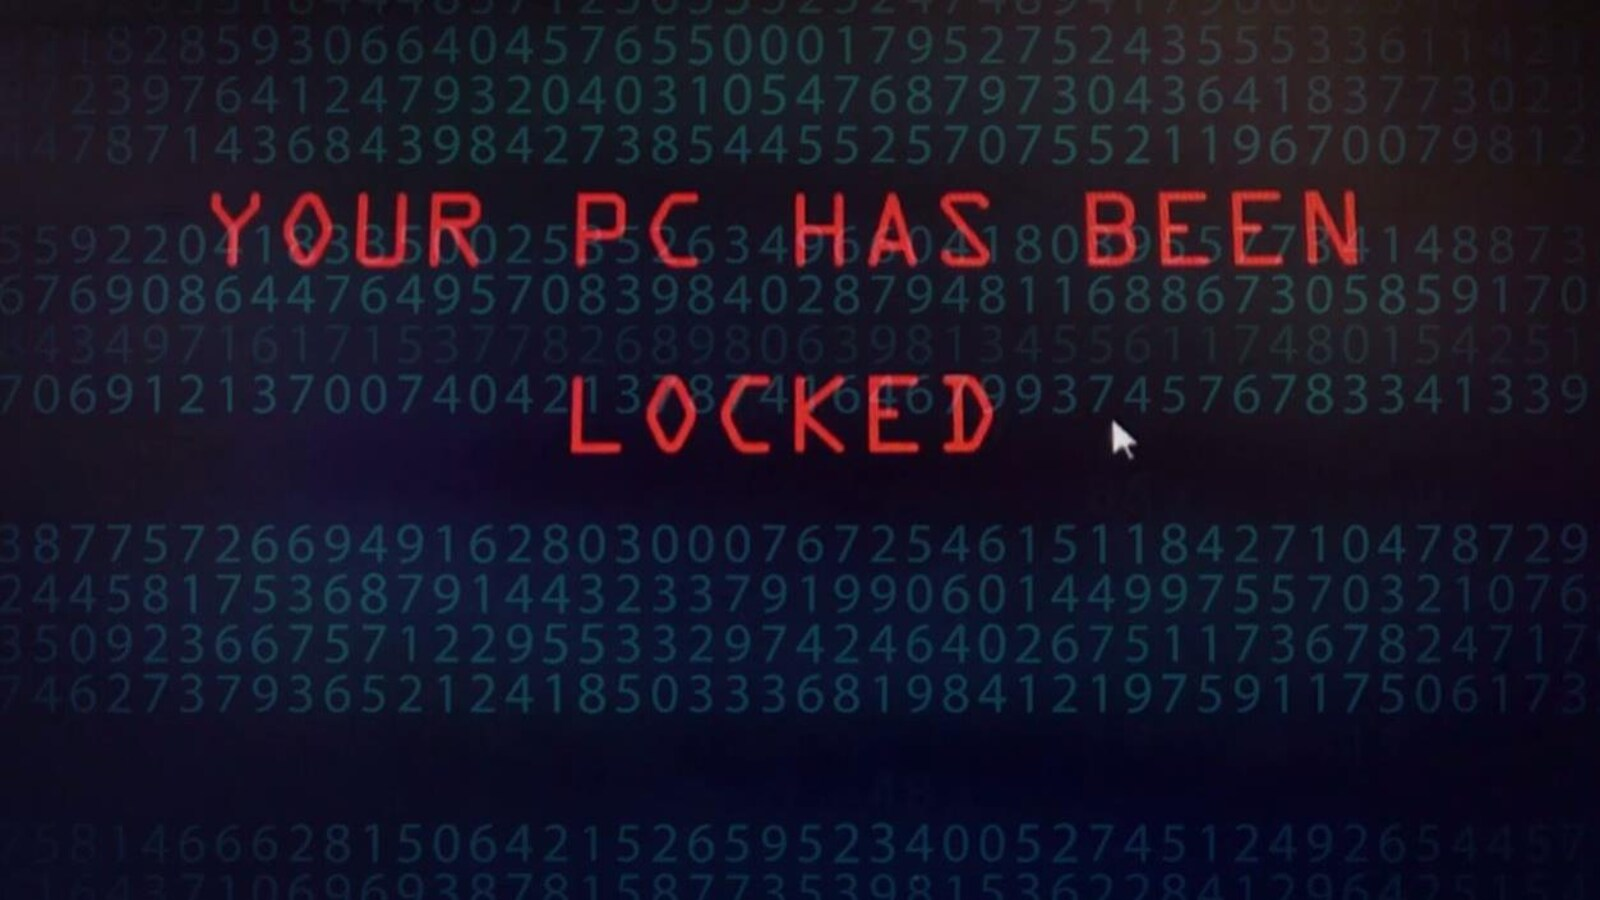 La phrase « Your PC has been locked » apparaît sur un écran d'ordinateur.